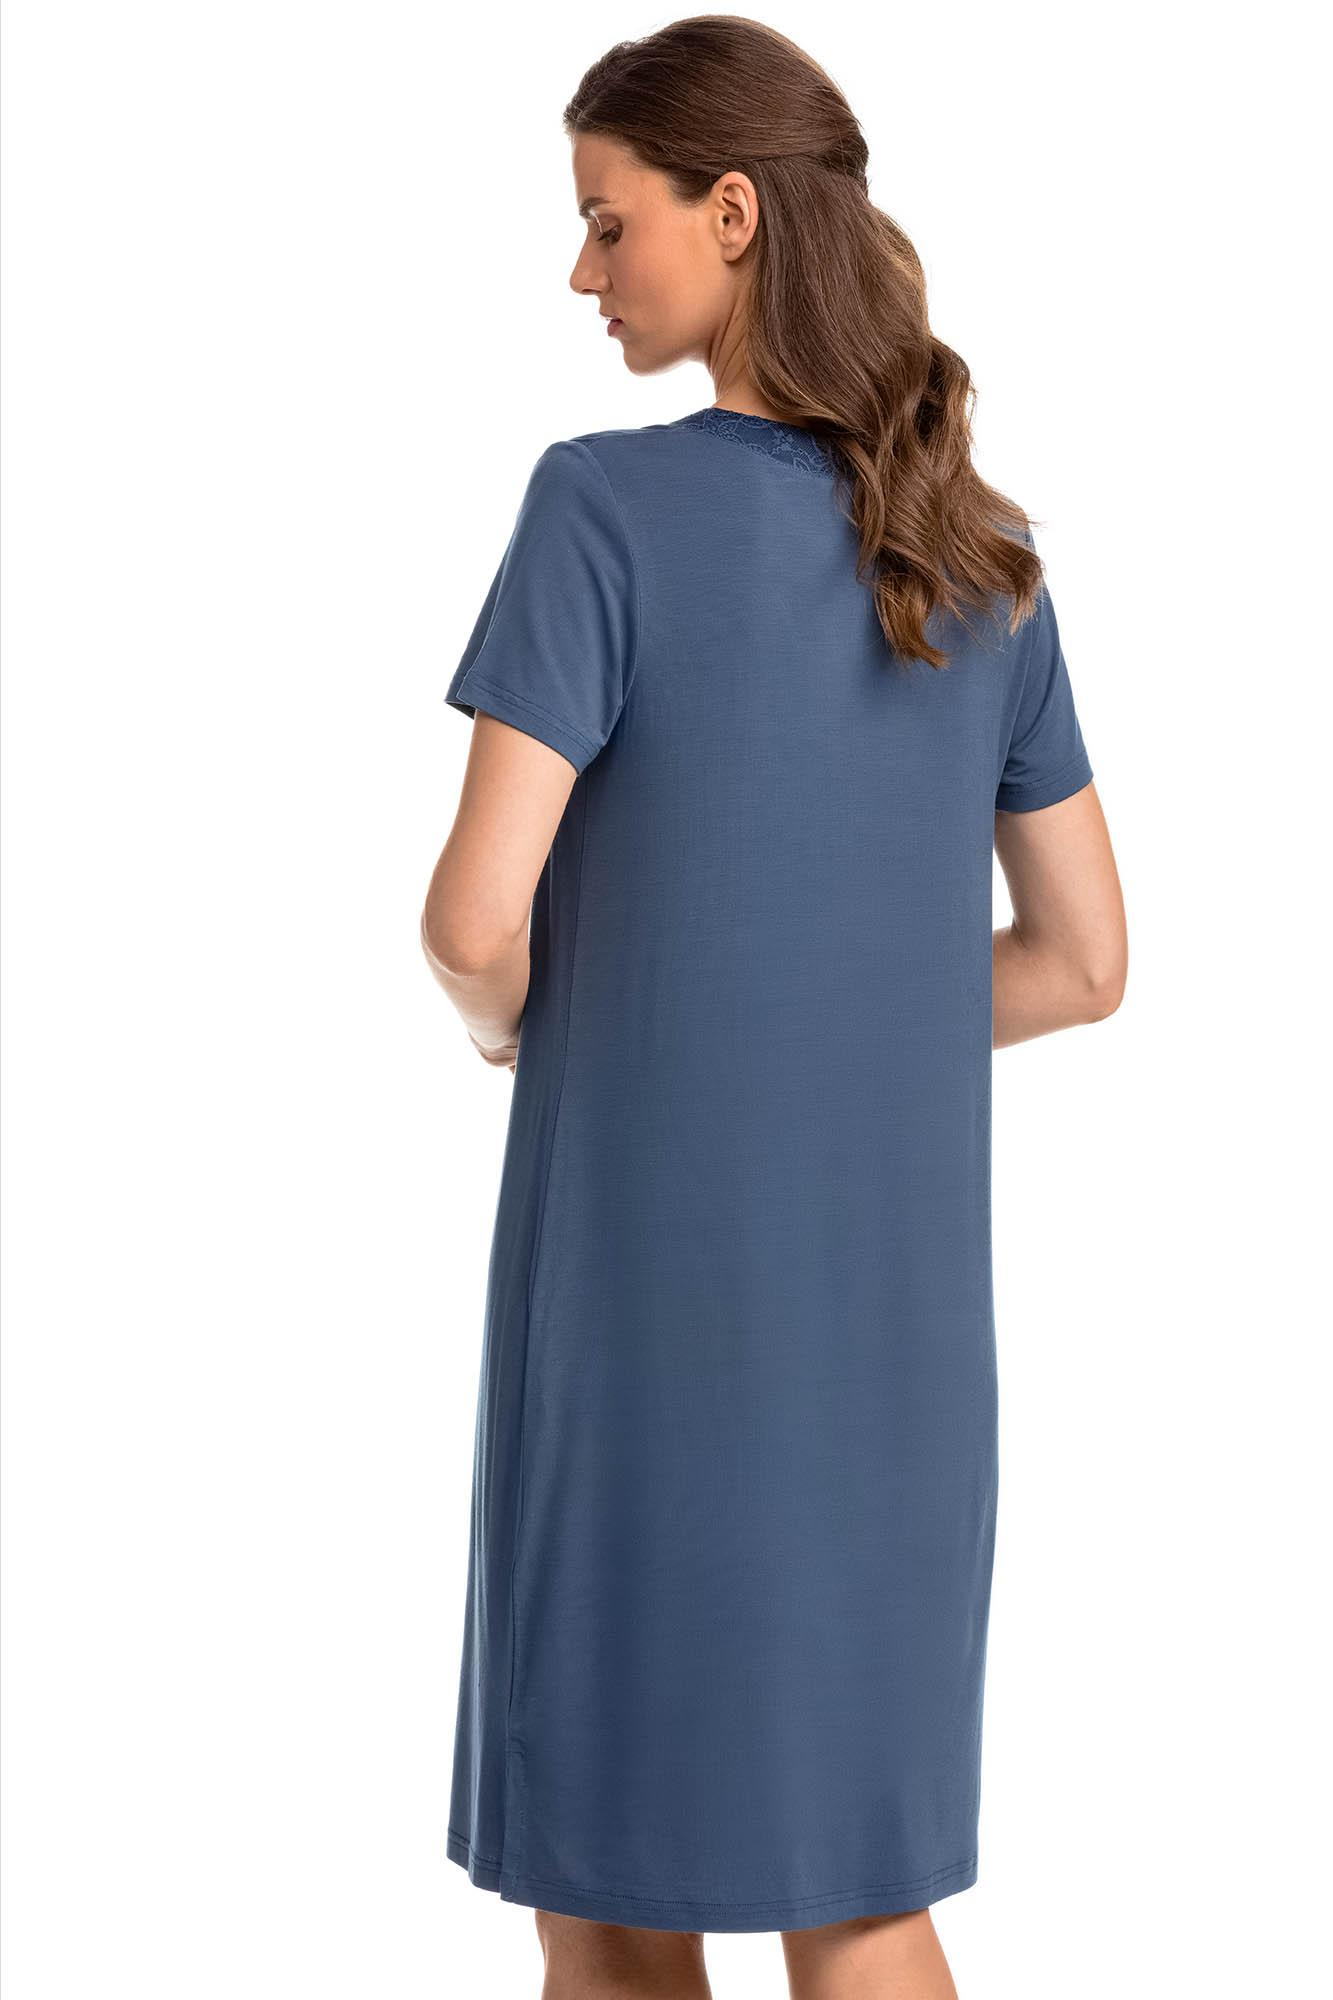 Short-Sleeved Nightgown